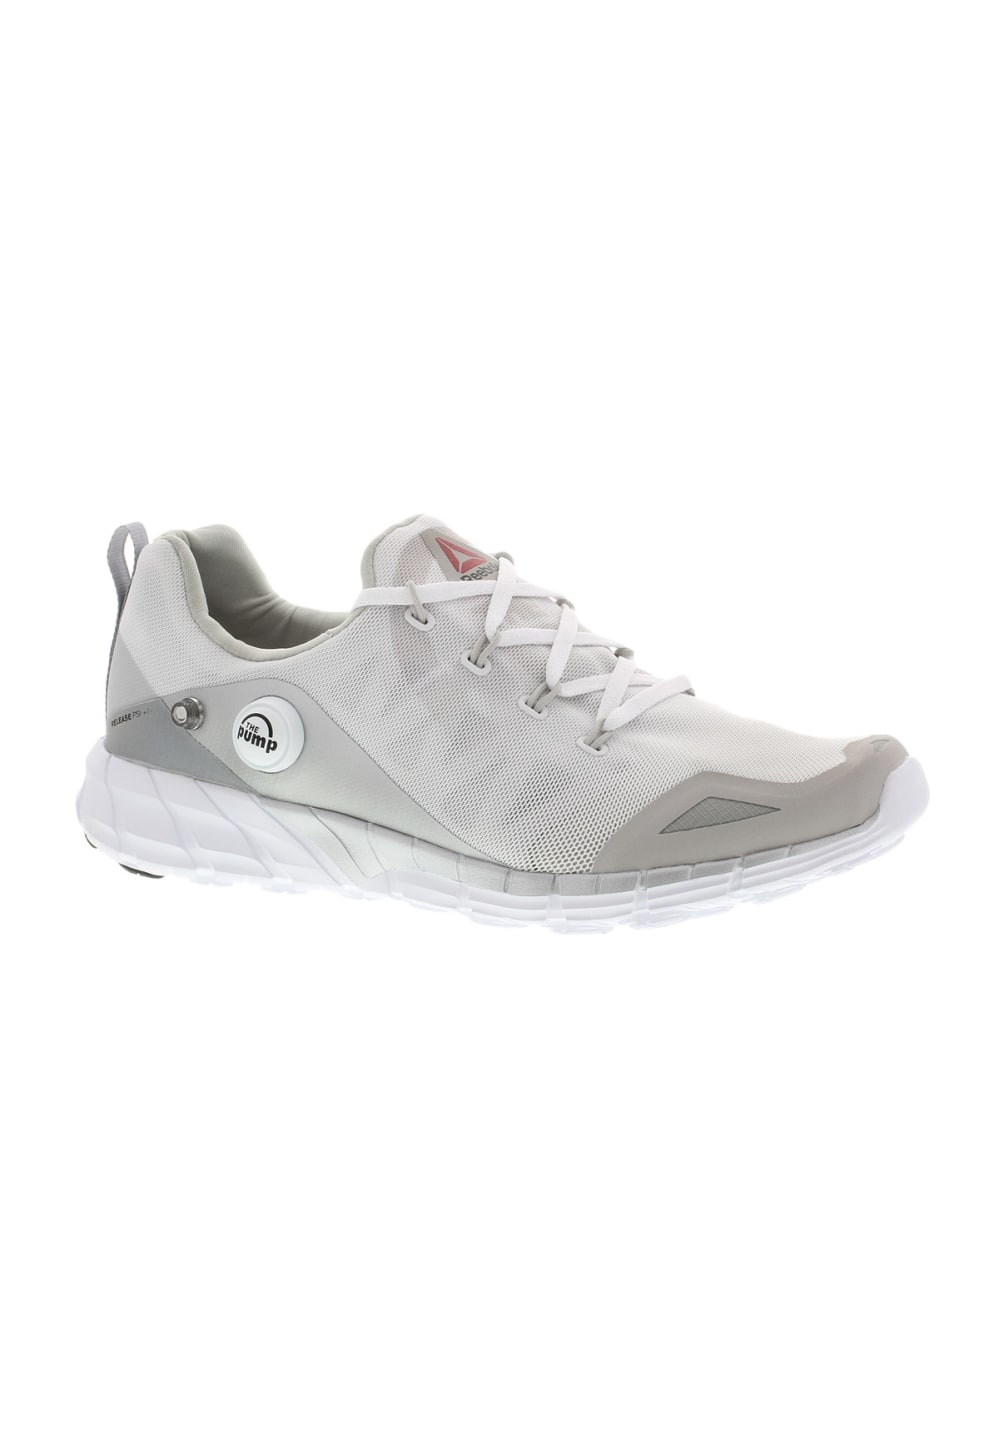 5c0ea7e13 Next. -60%. Reebok. ZPump Fusion 2.0 Ele - Running shoes for Women